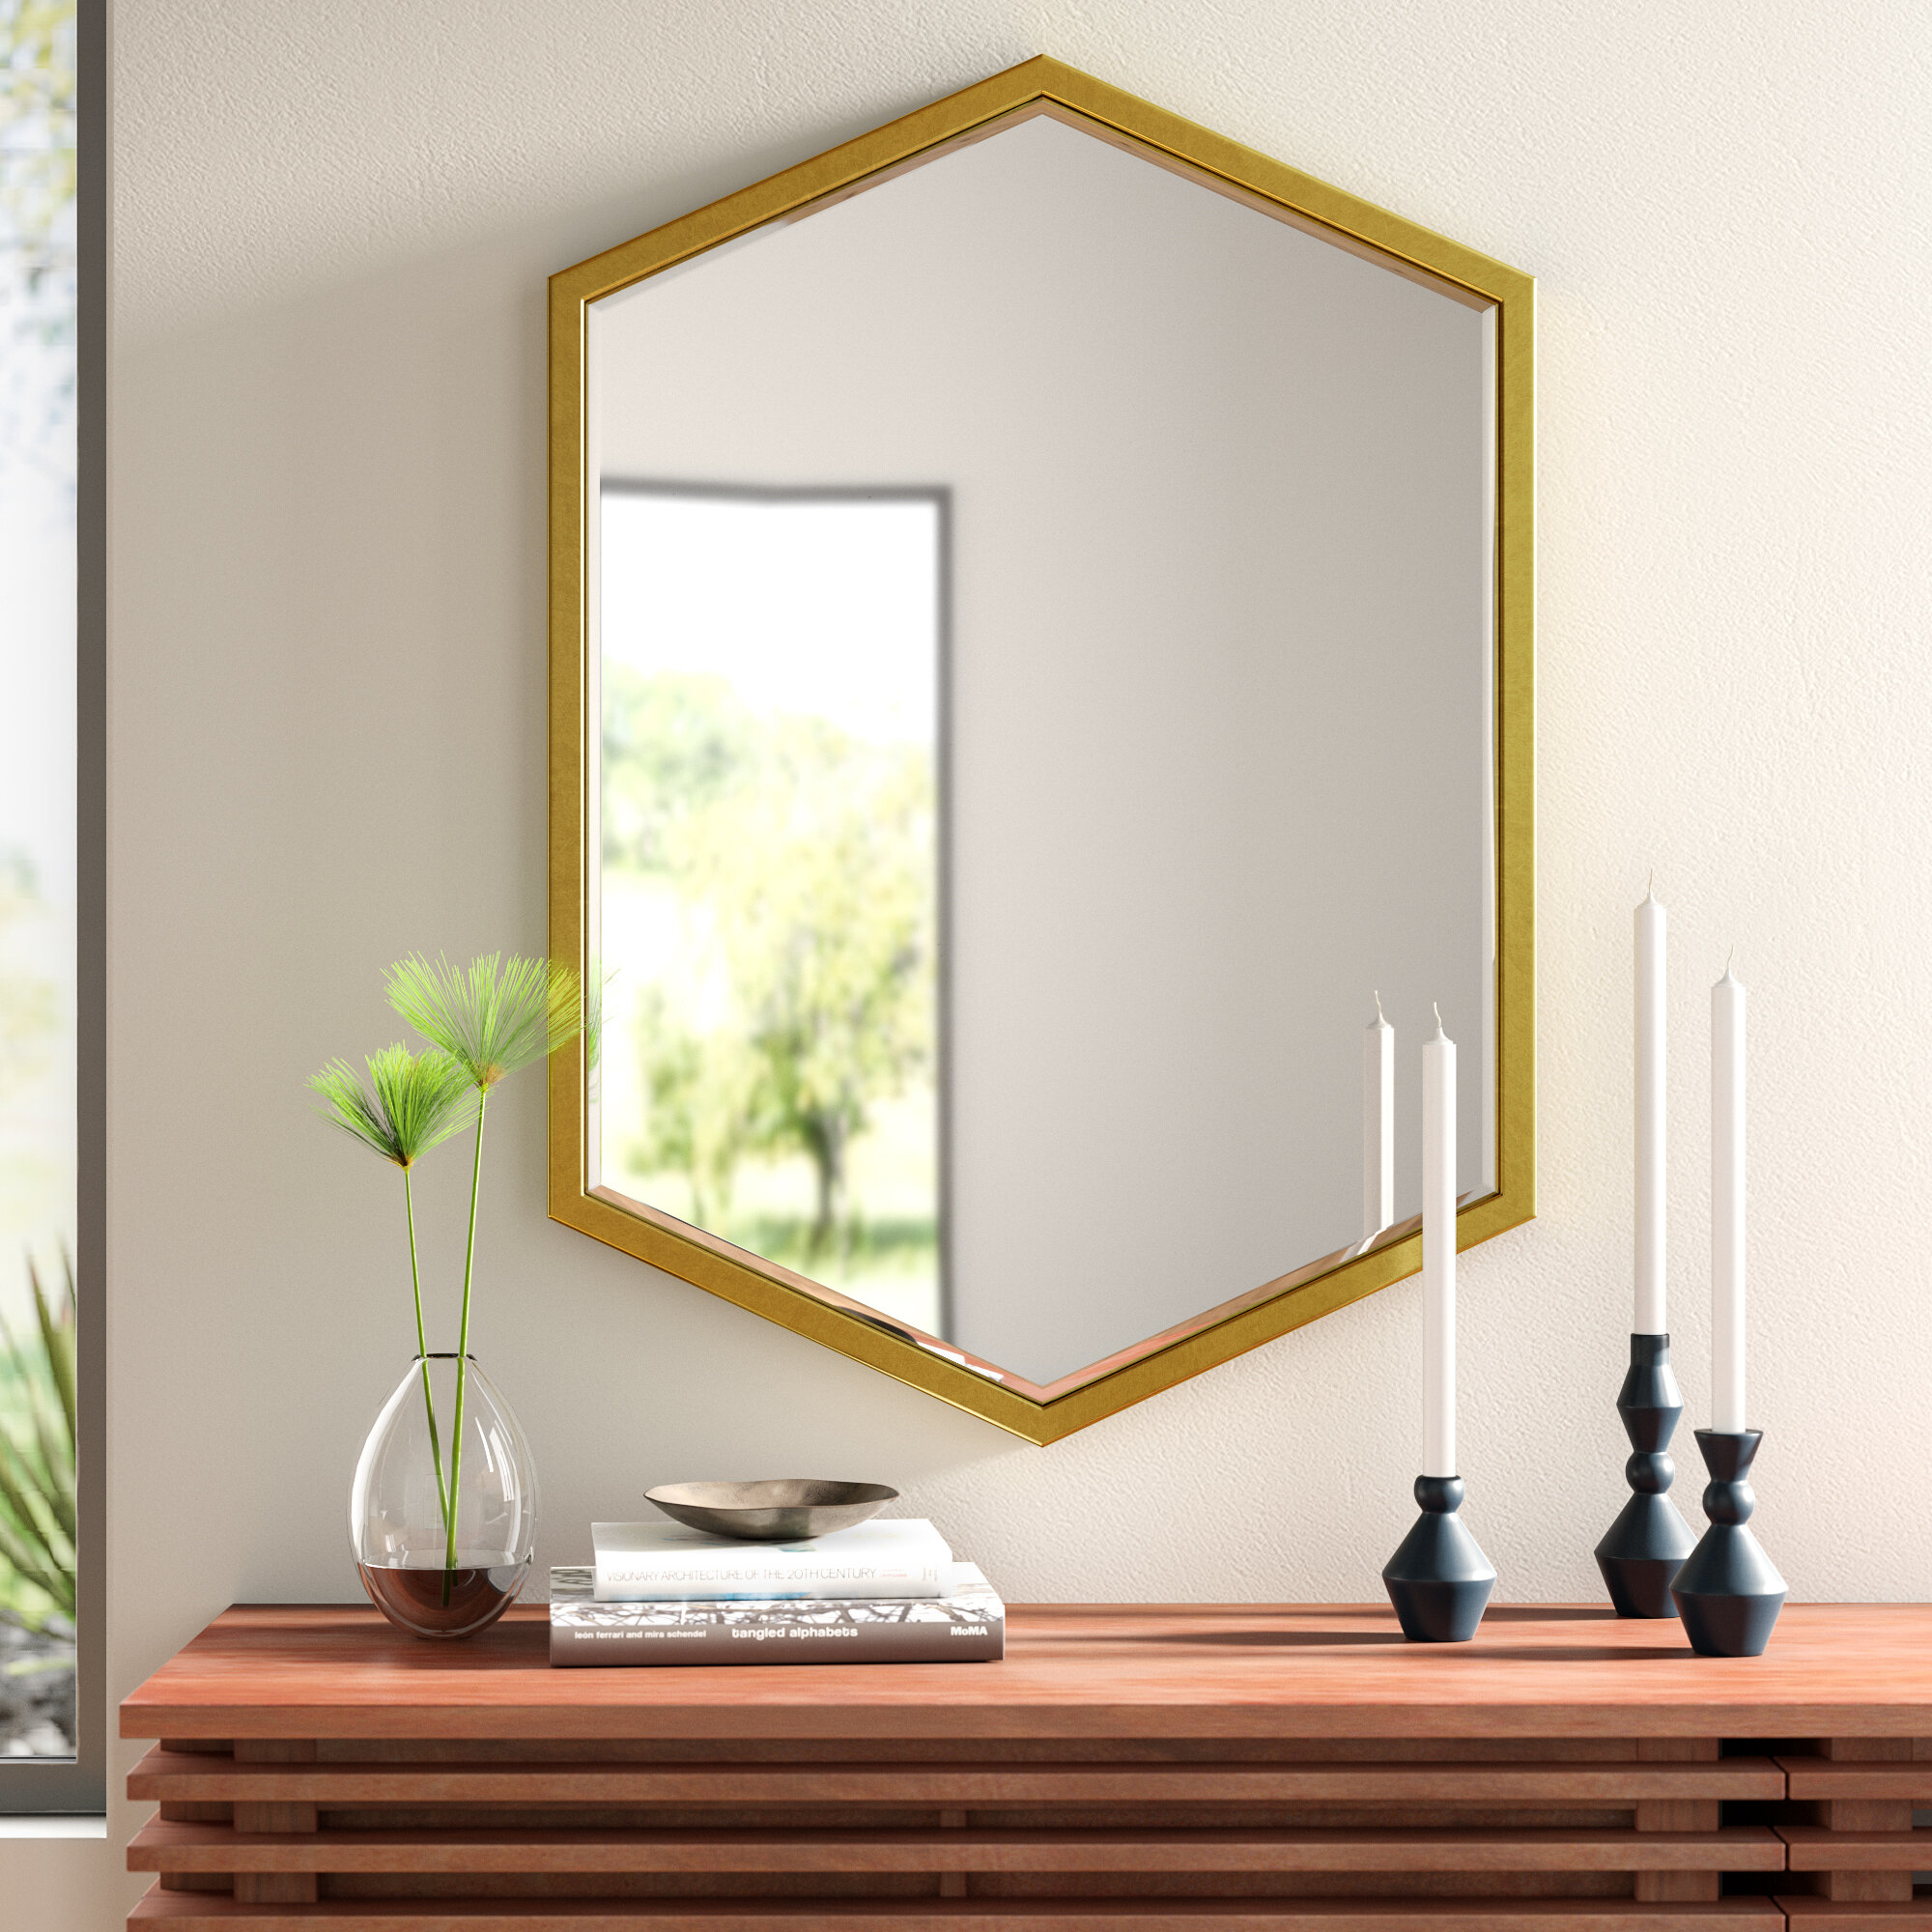 Modern & Contemporary Wall Mirror With Hooks | Allmodern Pertaining To Caja Rectangle Glass Frame Wall Mirrors (View 24 of 30)